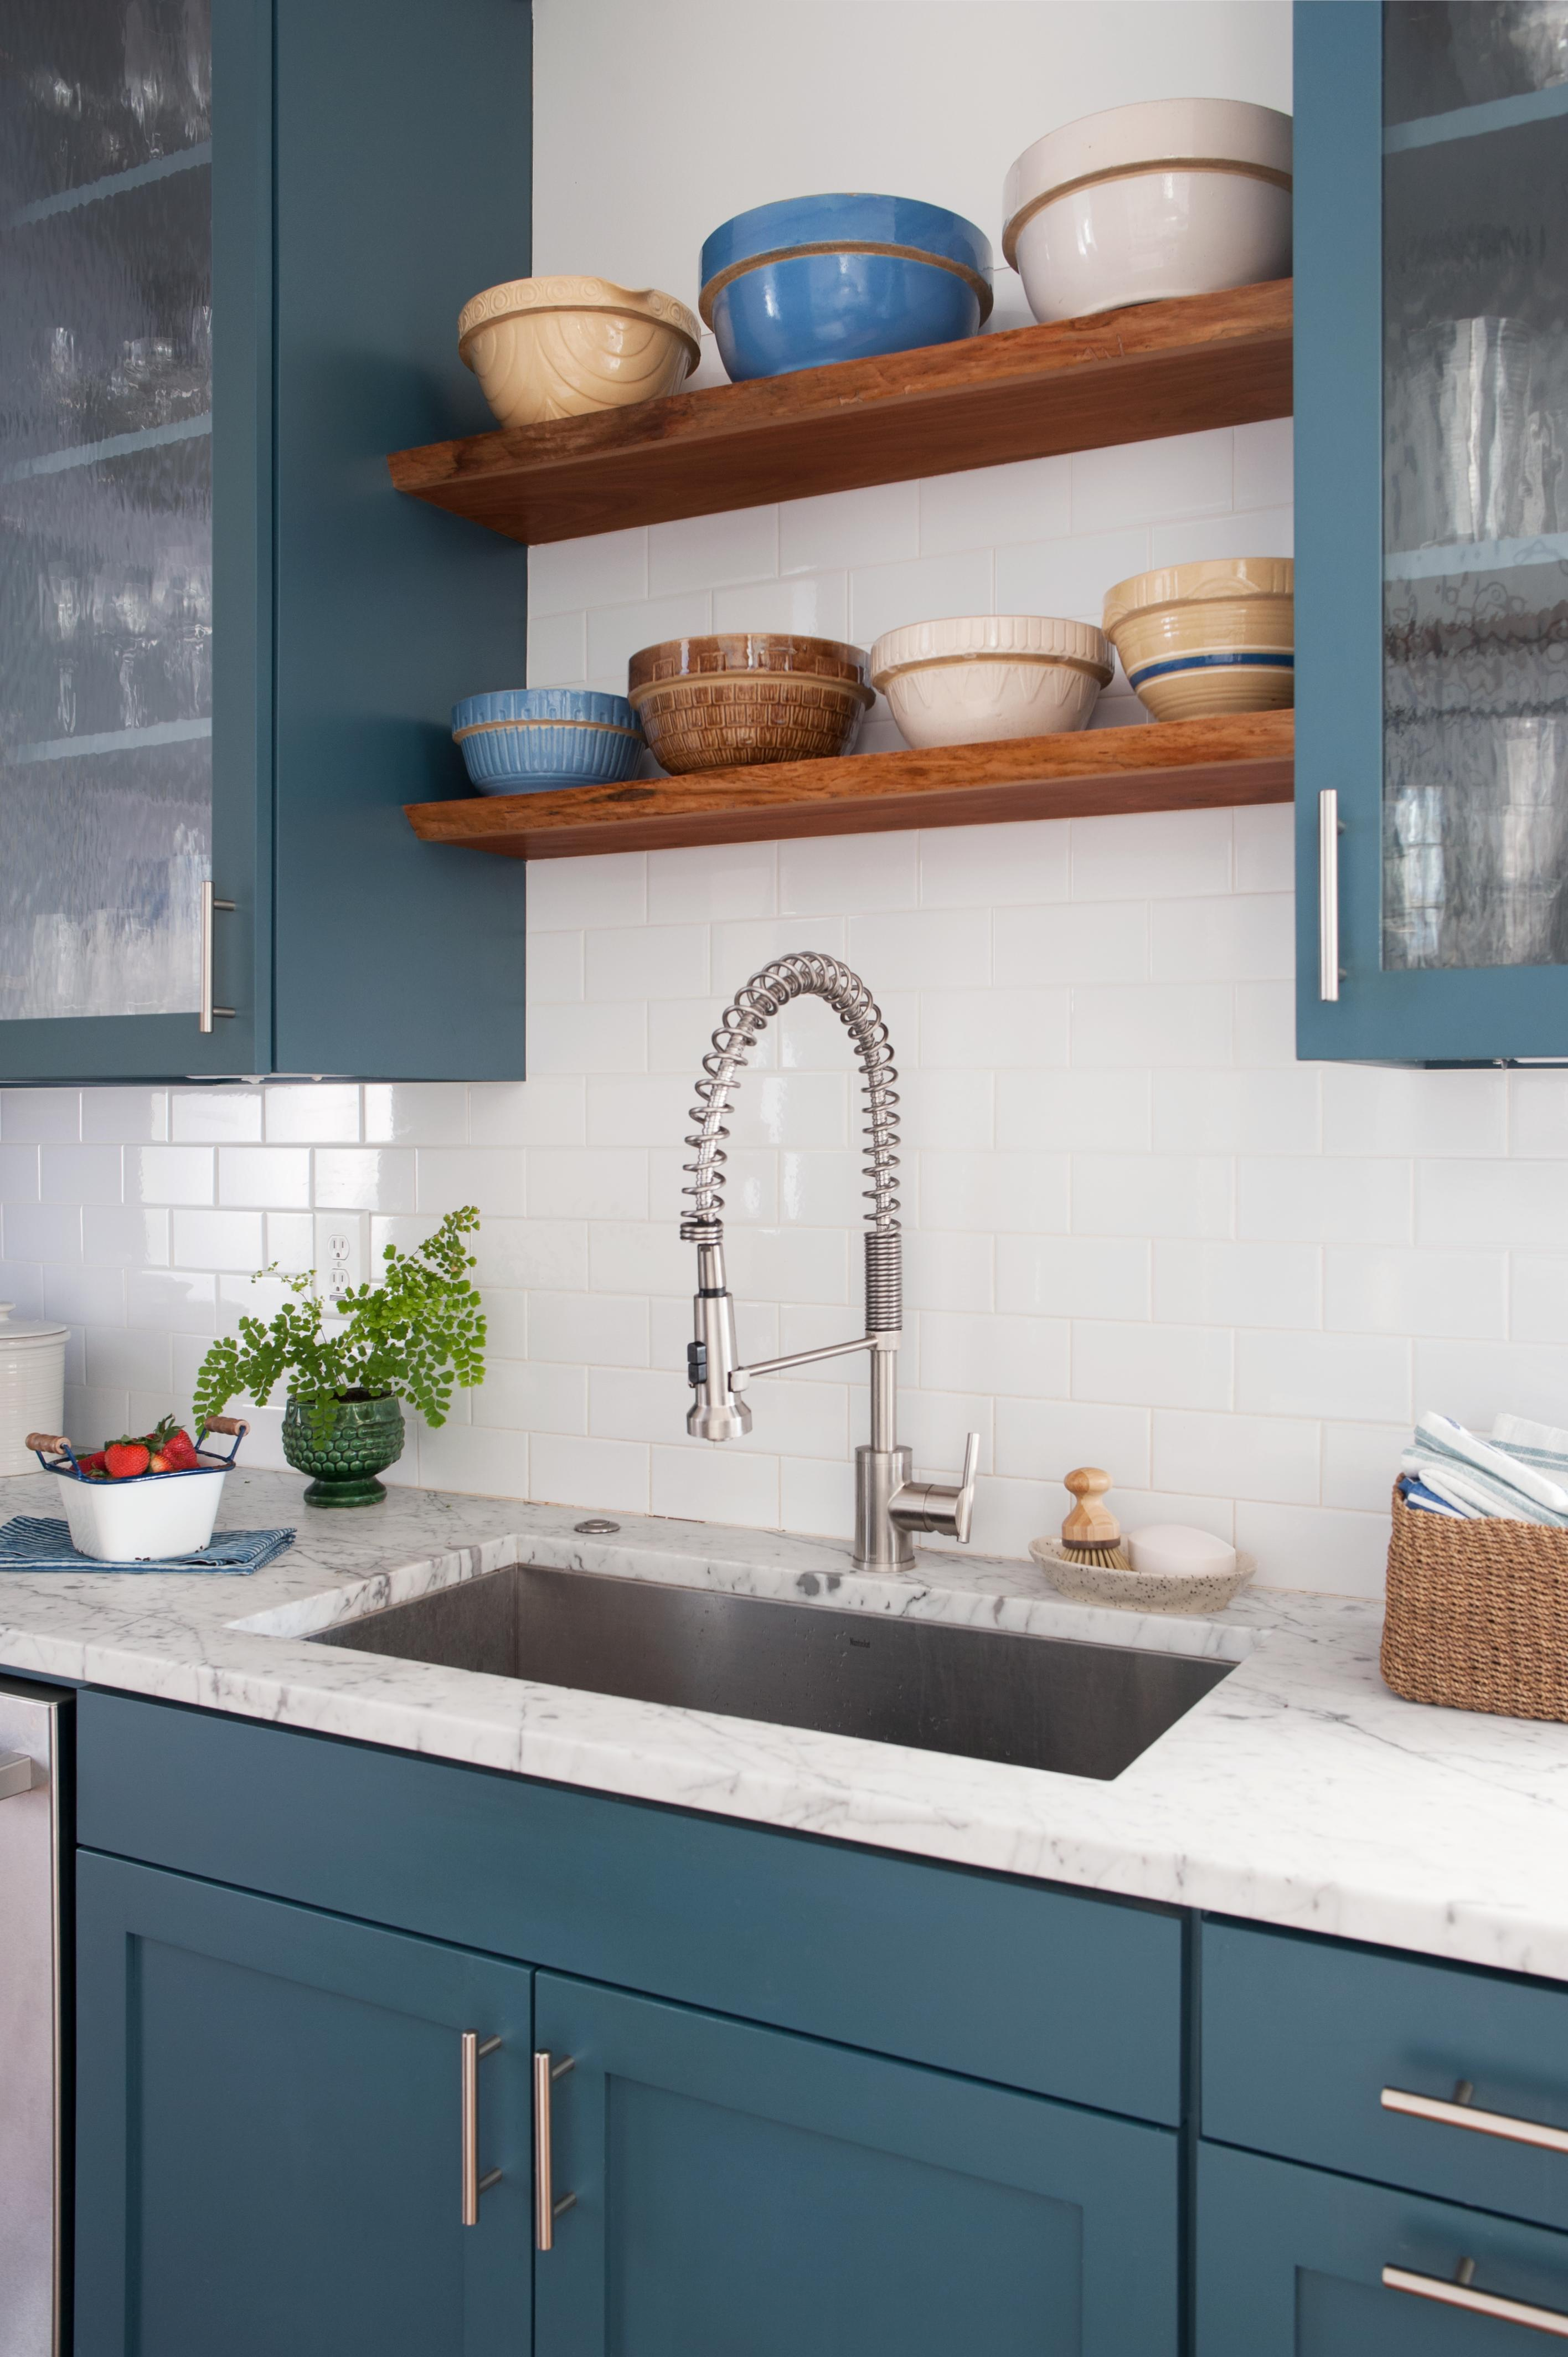 marble counter kitchen sink with blue cabinets and decorative bowls on wood shelves